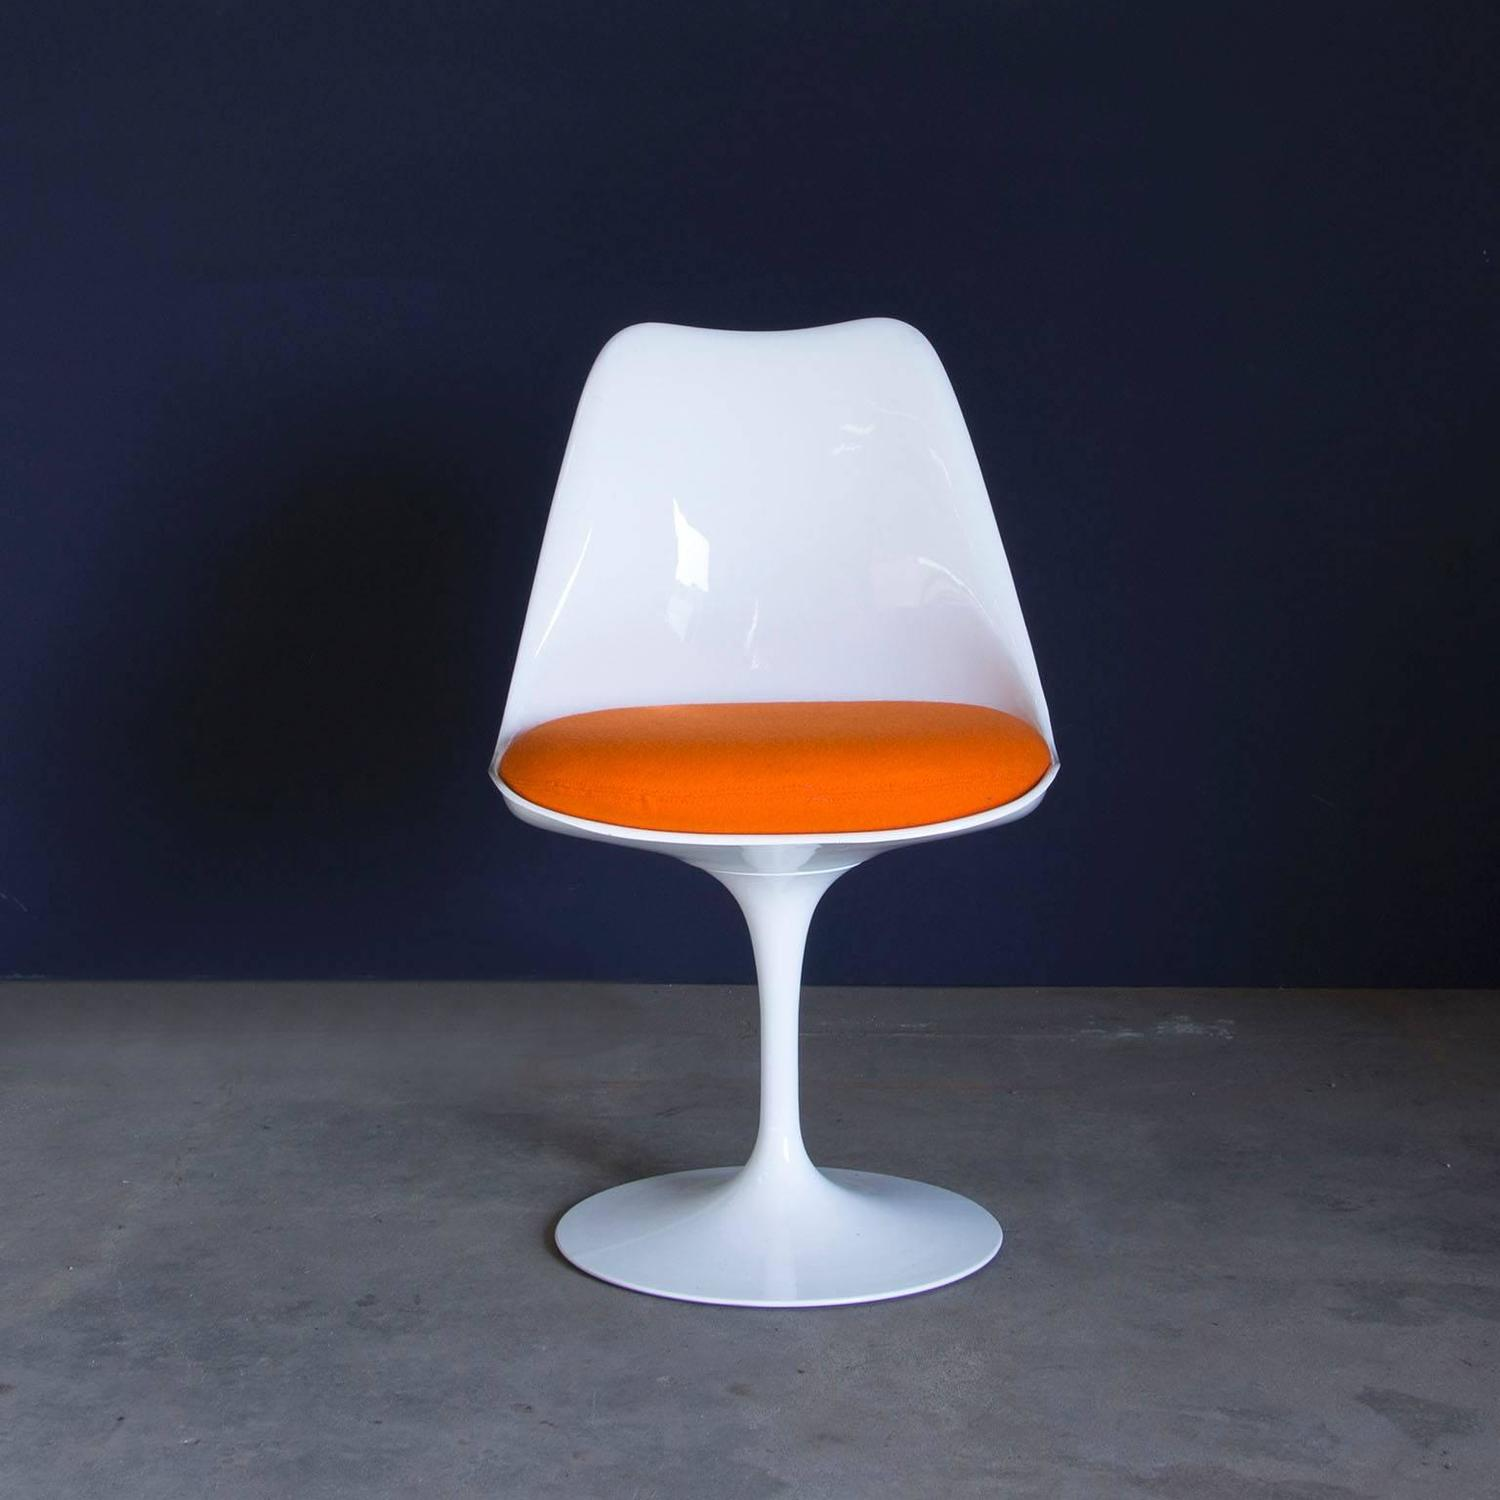 1956 Eero Saarinen Early Original Tulip Chair 151 In